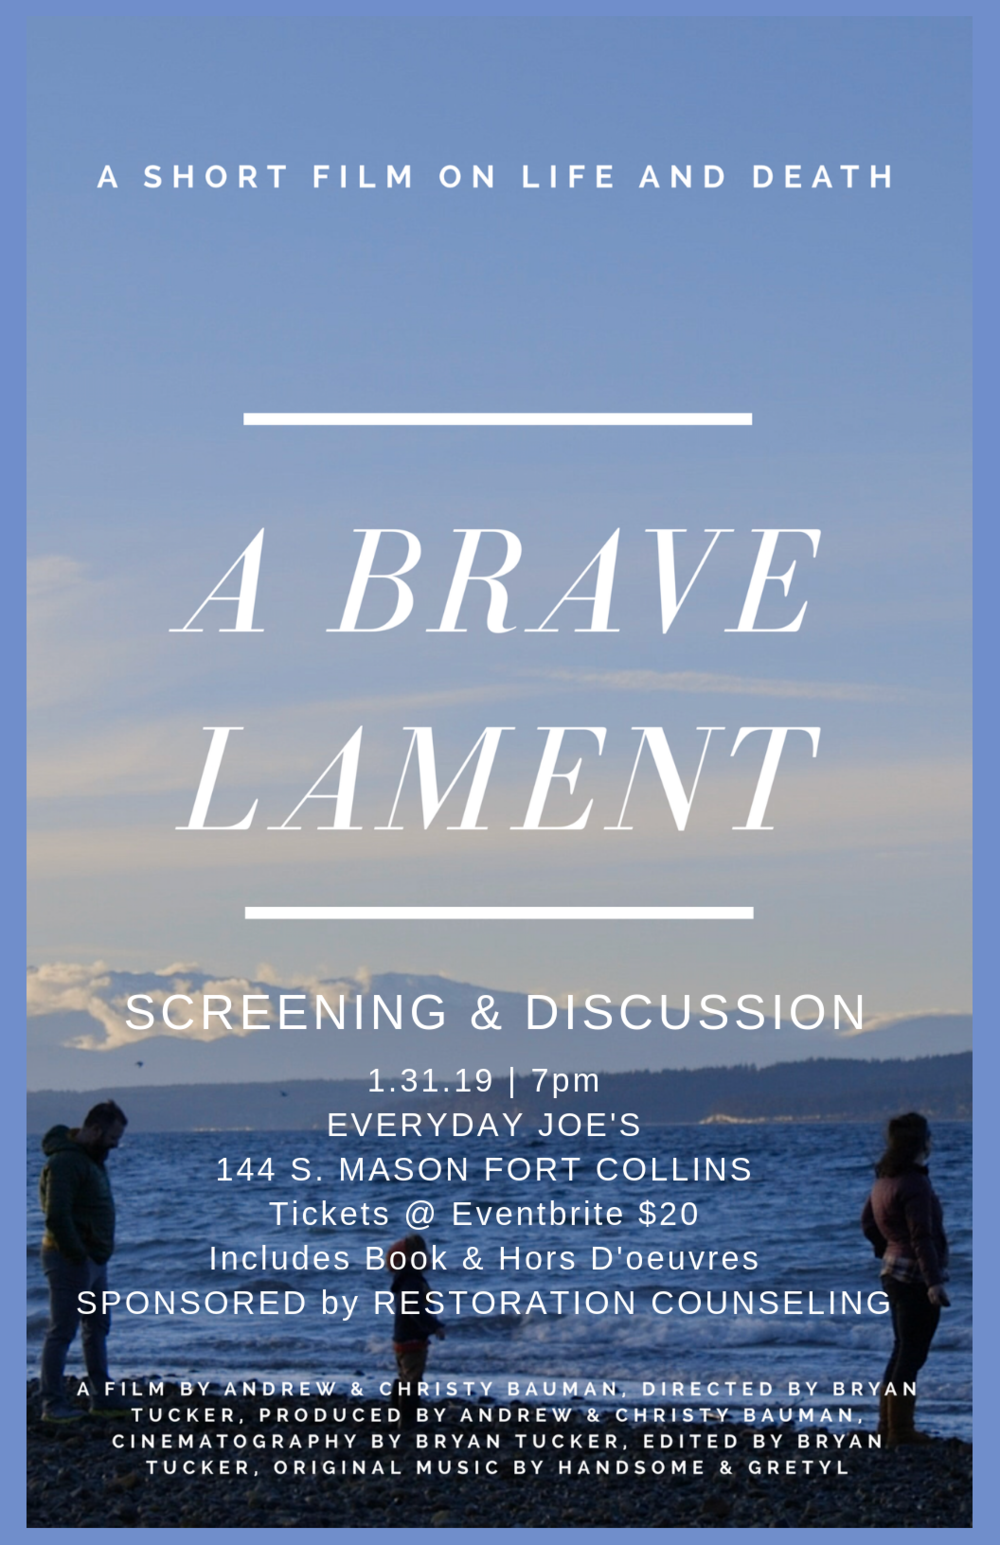 January 31st at 7pm - After losing their first child to stillbirth, therapists Andrew and Christy Bauman only knew one way to grieve: loud and outwardly. Though their son Brave never took his first breath, his death and their exposed grief has echoed throughout a close-knit community ever since that tragic day.Restoration Counseling is proud to sponsor the showing of the short film, A Brave Lament, followed by a conversation with writers/producers Andrew and Christy Bauman.Claim your ticket today and join us on Thursday, January 31st at 7pm at Everyday Joes in Fort Collins. Tickets include a copy of the book, A Brave Lament, entrance to the film and hors d'oeuvres. Link to trailer: https://vimeo.com/215279039Claim your ticket: https://www.eventbrite.com/e/a-brave-lament-tickets-53544869145